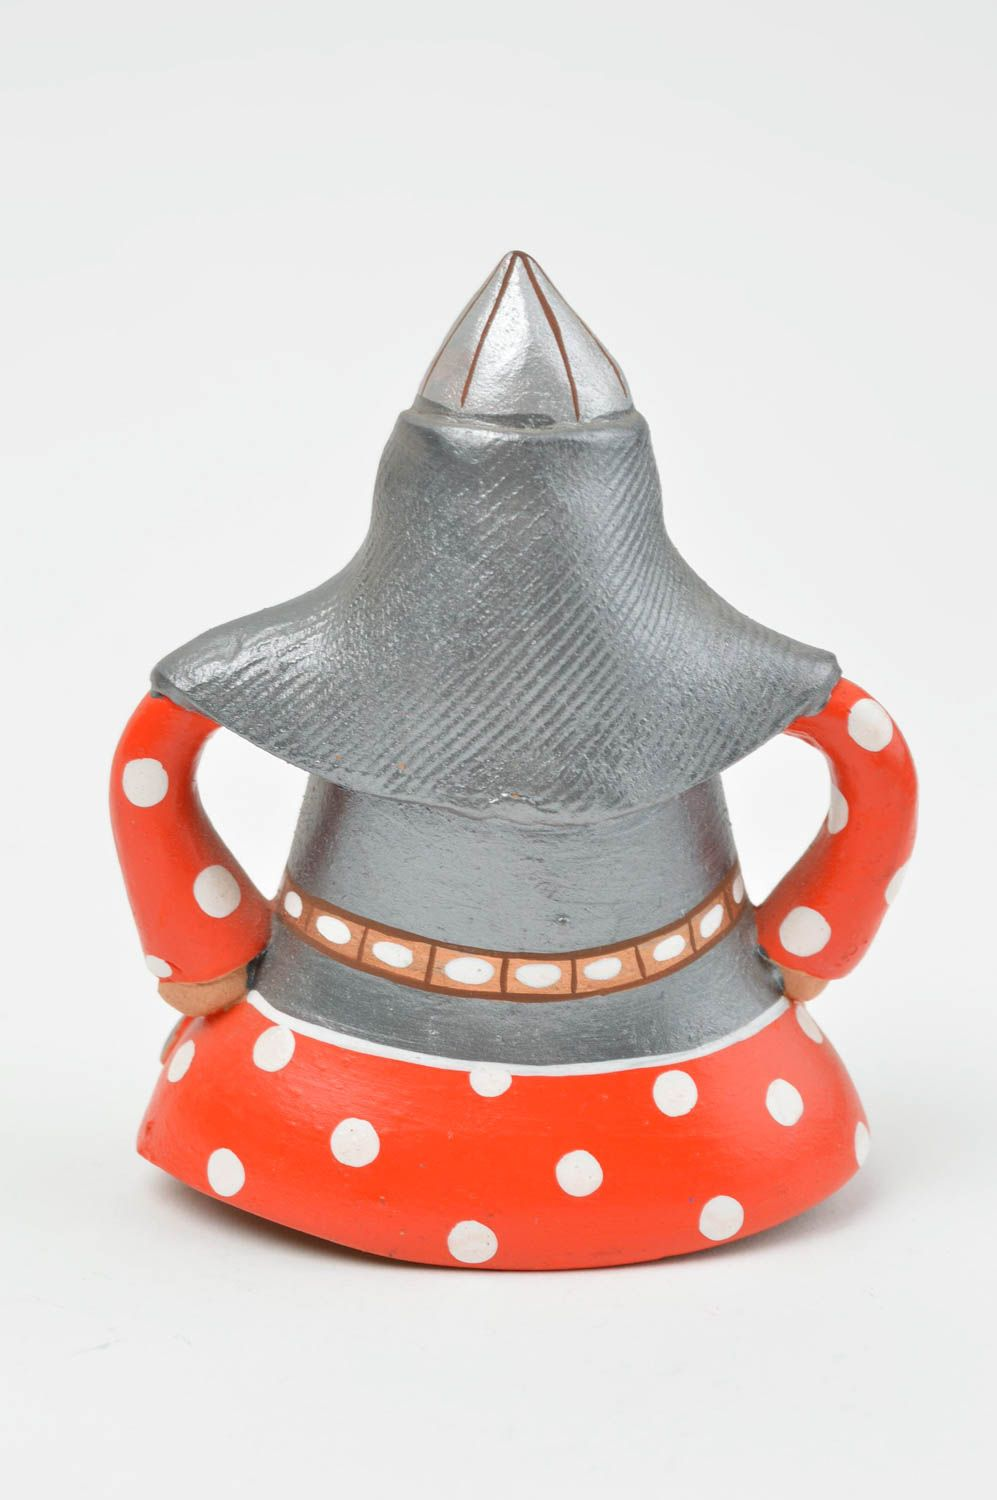 Stylish clay bell painted interesting accessories beautiful interior decor photo 3